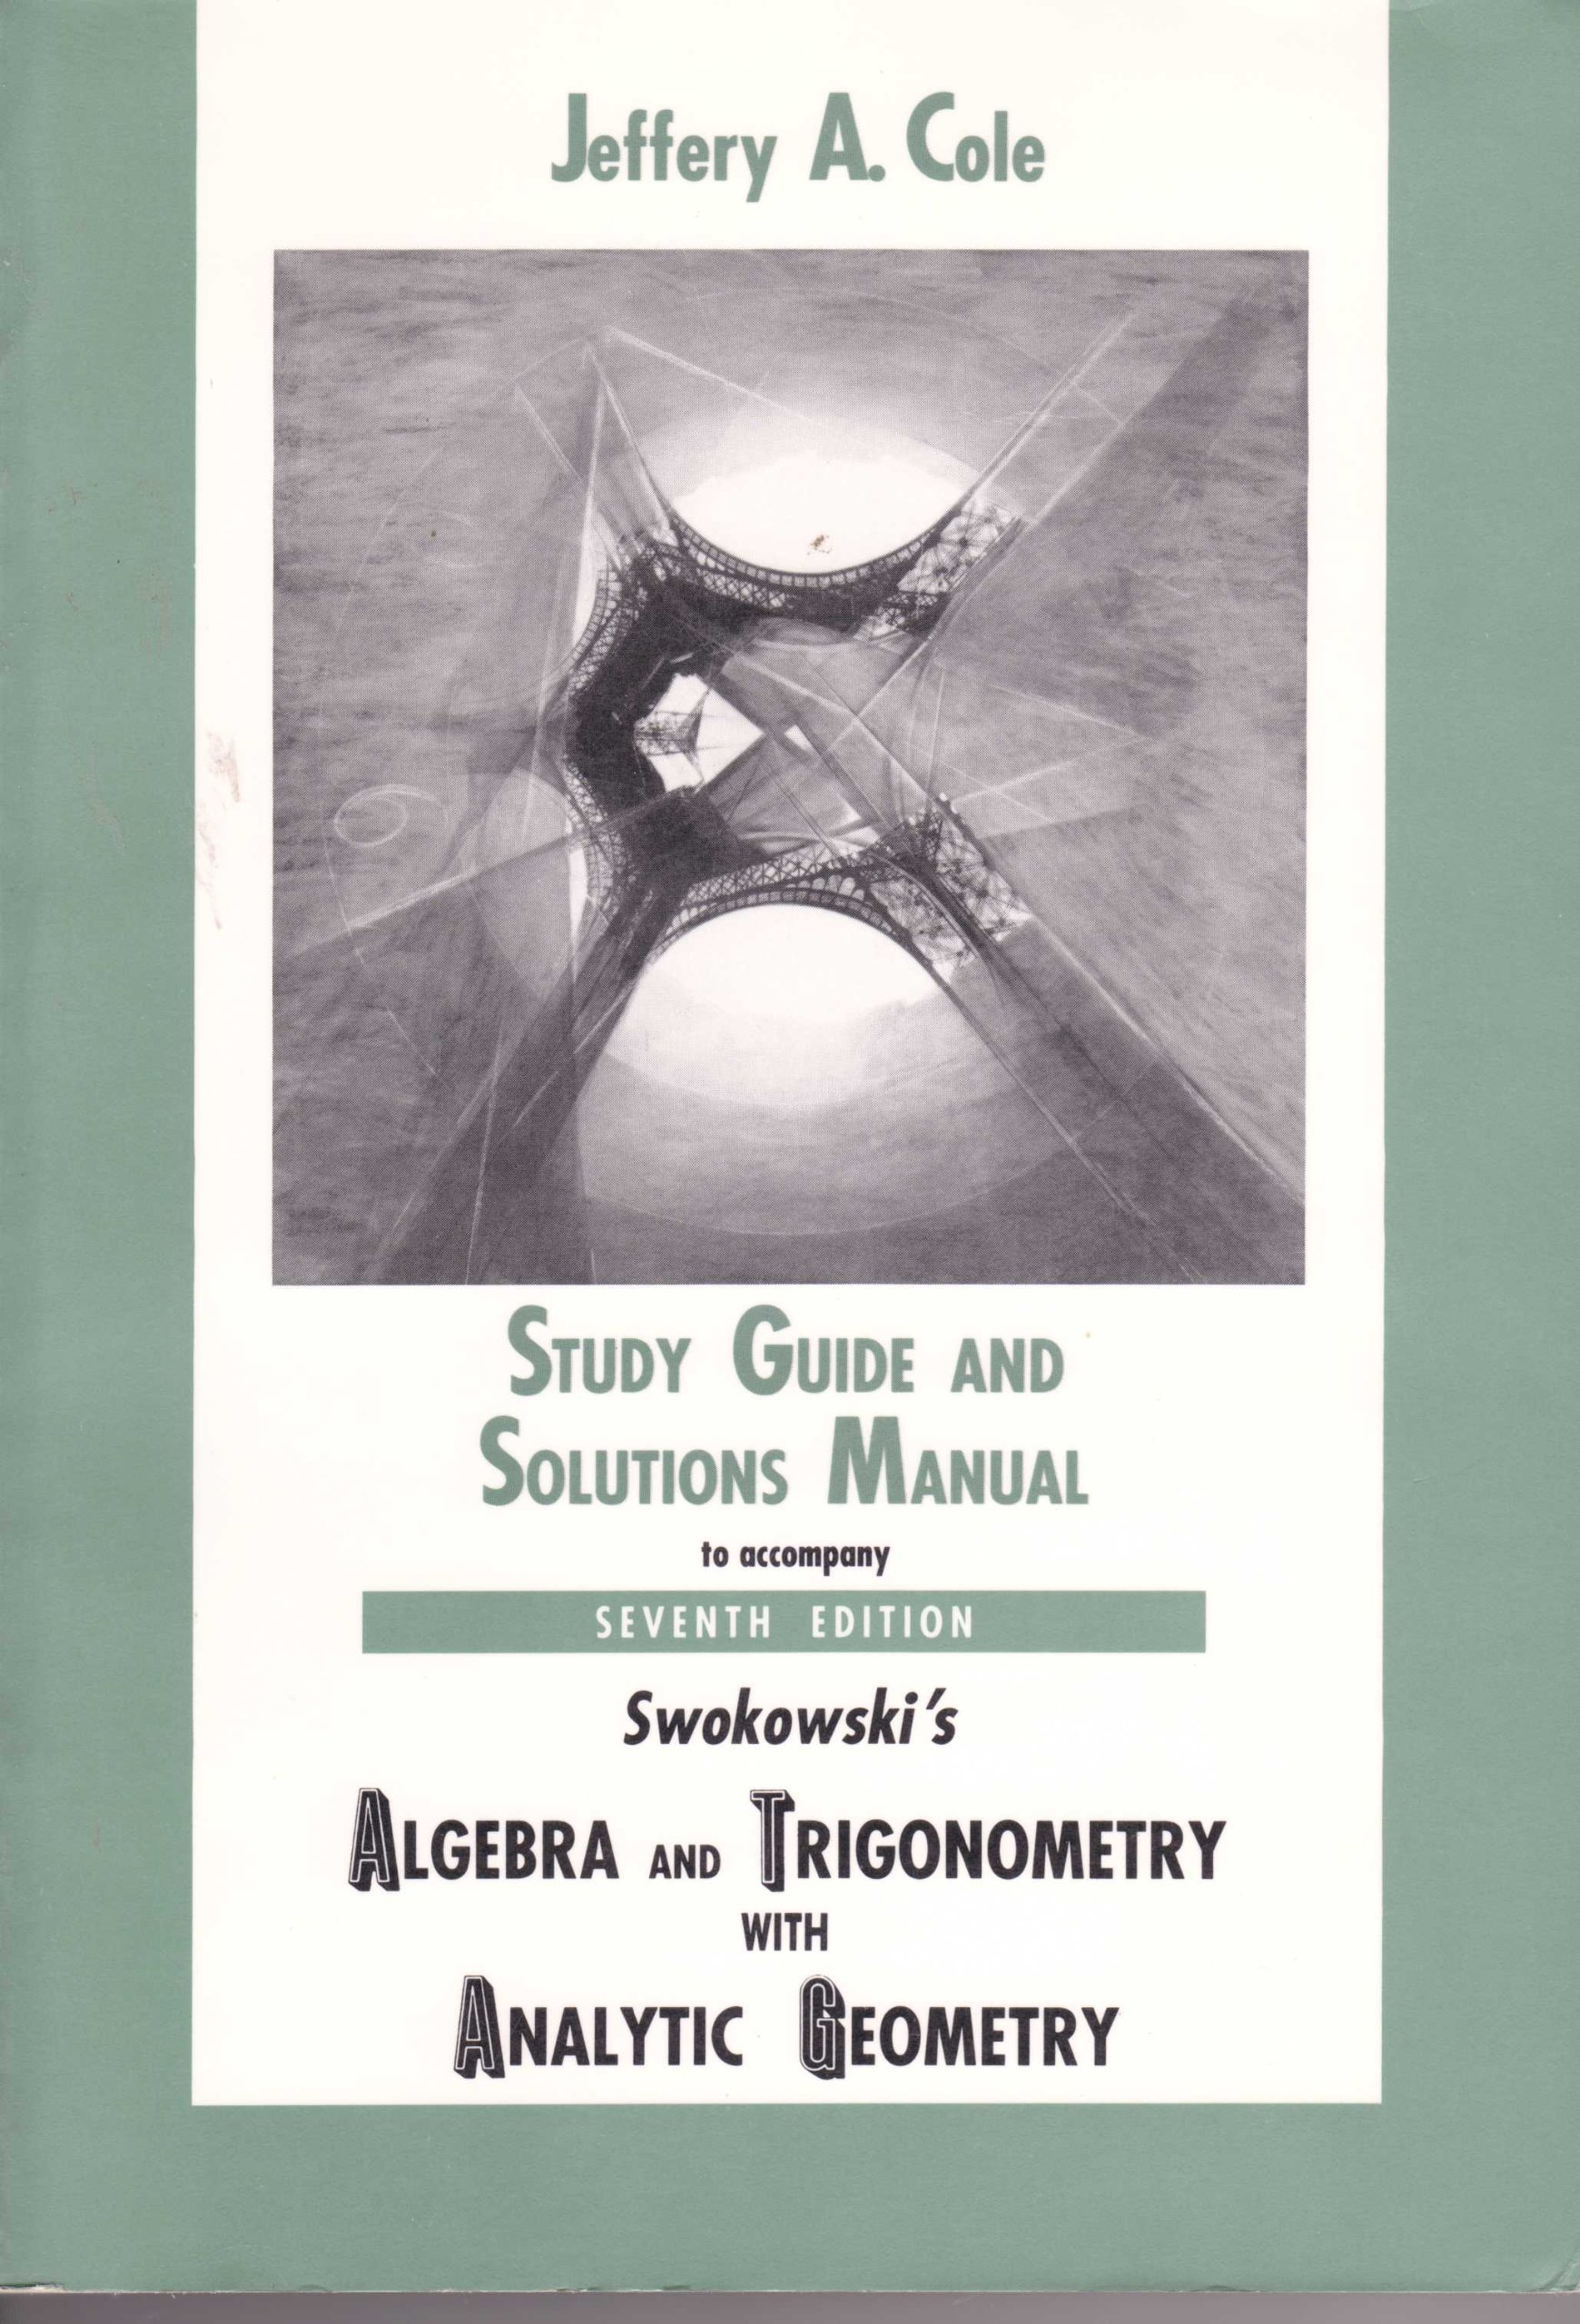 Swokowskis Algebra and Trigonometry with Analytic Geometry, 7th Edition,  STUDY GUIDE AND SOLUTIONS MANUAL: Cole, Swokowski: Amazon.com: Books